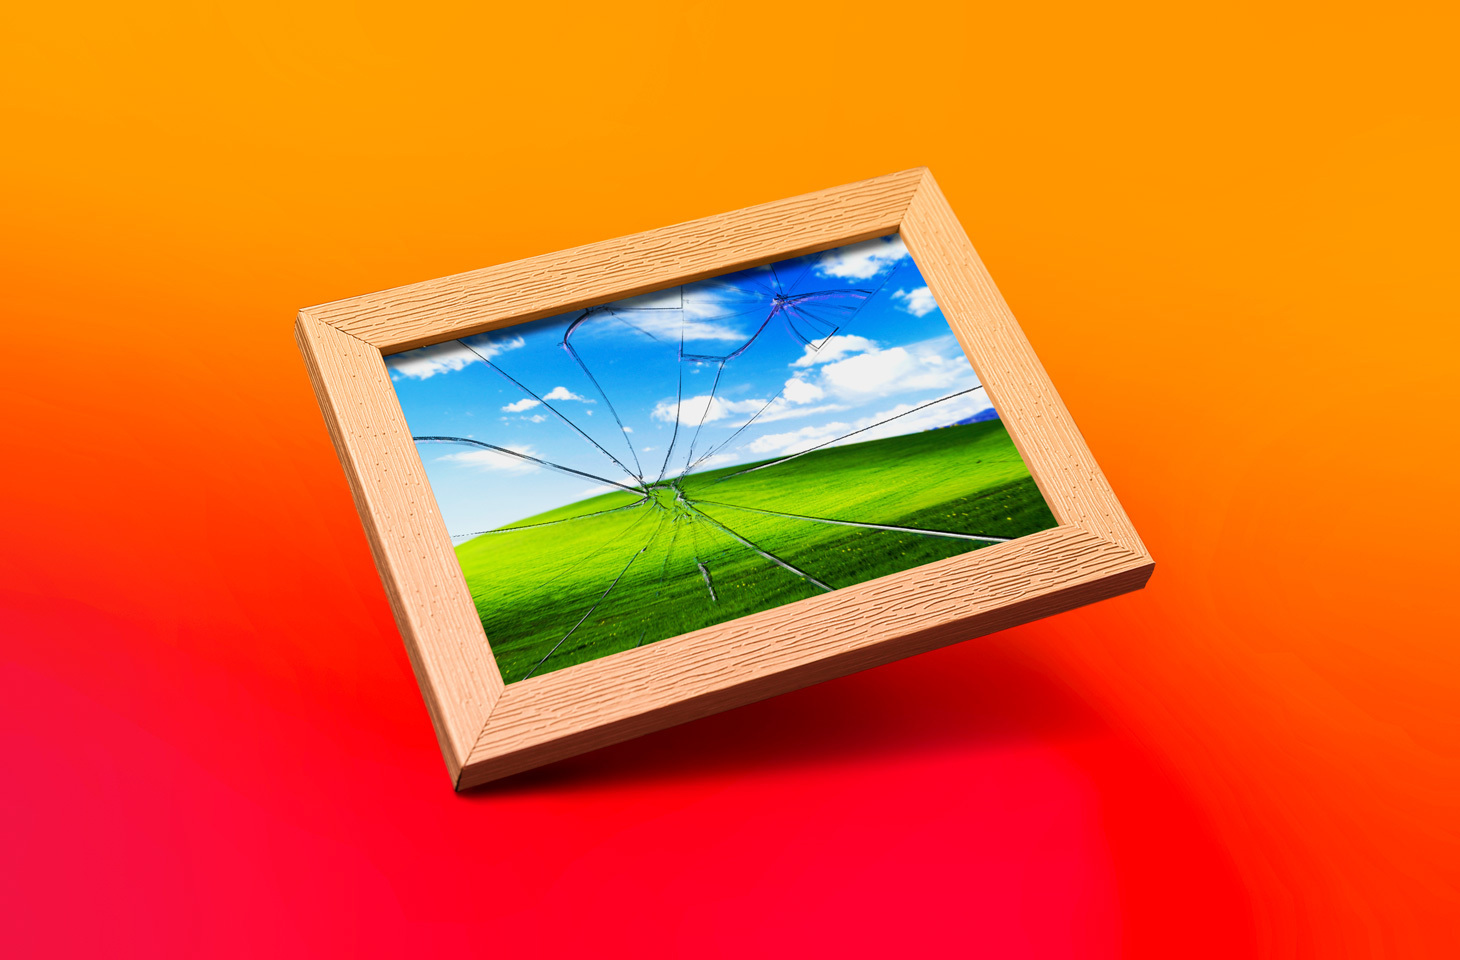 Windows XP source code leak: Tips for businesses